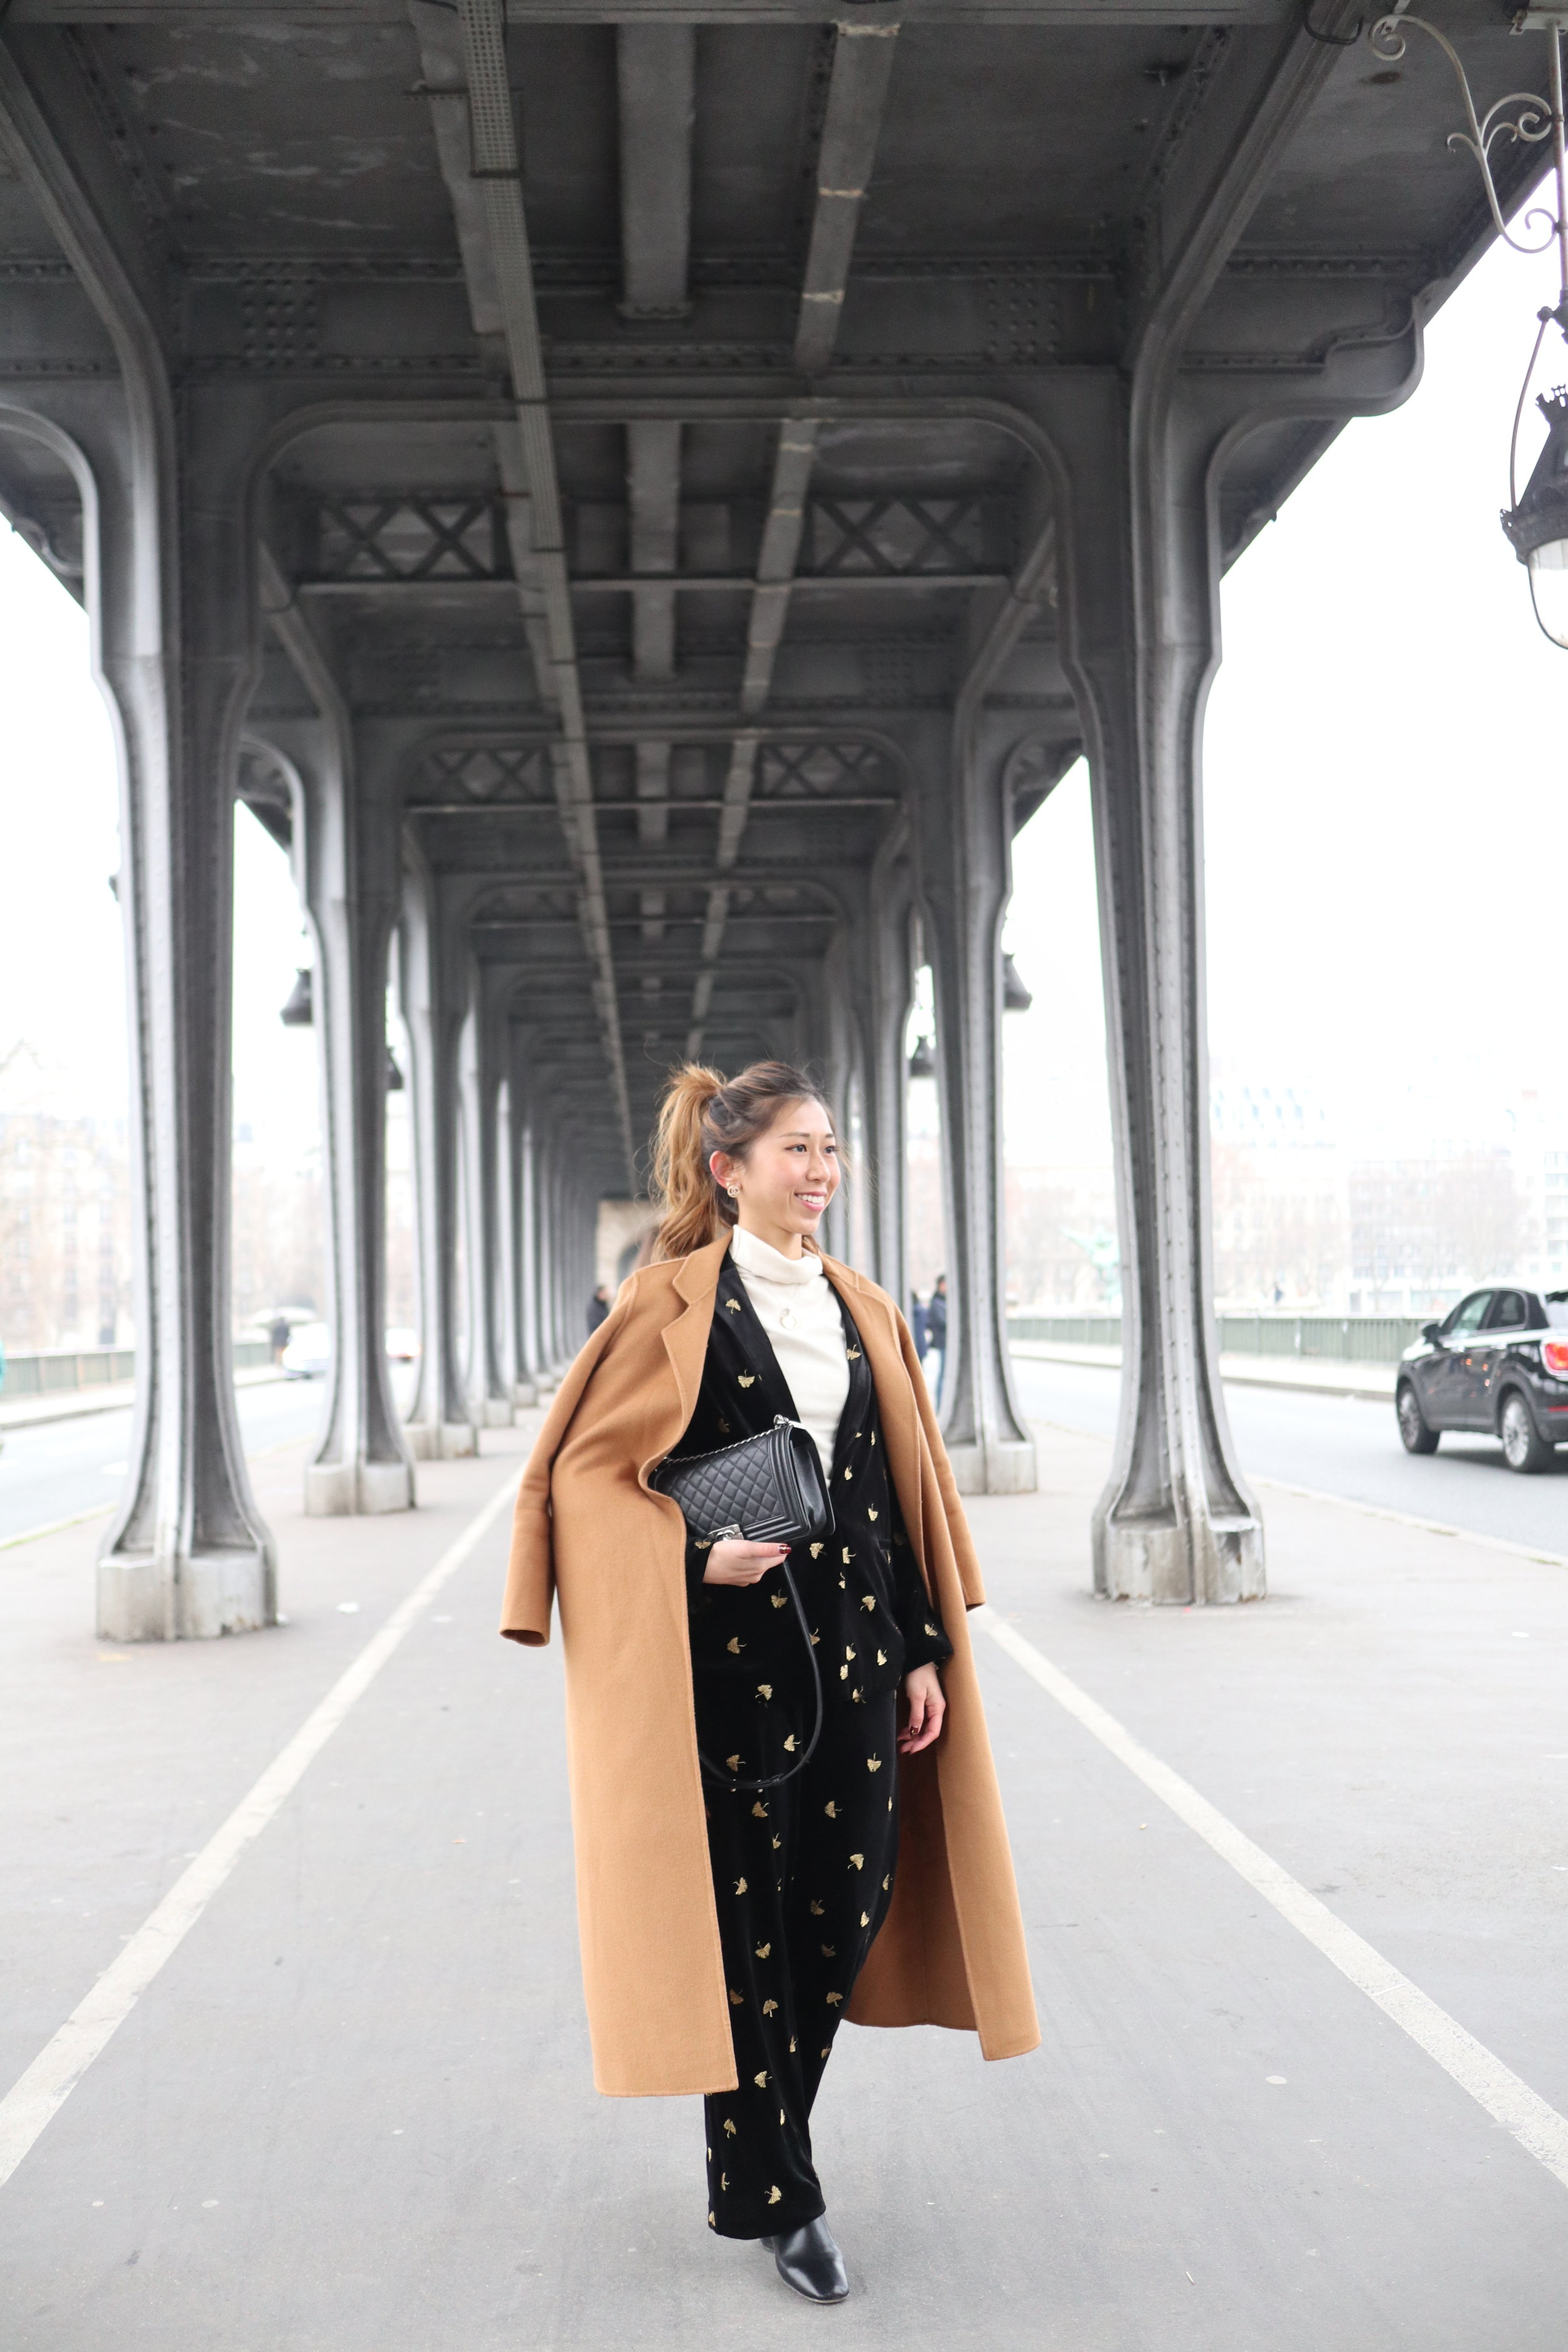 & OTHER STORIES embroidered velvet blazer  /  & OTHER STORIES embroidered velvet trousers  / GIORDANO LADIES beige turtleneck /  GIORDANO LADIES camel coat  /  Studiodoe black leather boots  /  CHANEL BOY Grained Calfskin & Ruthenium-Finish Metal